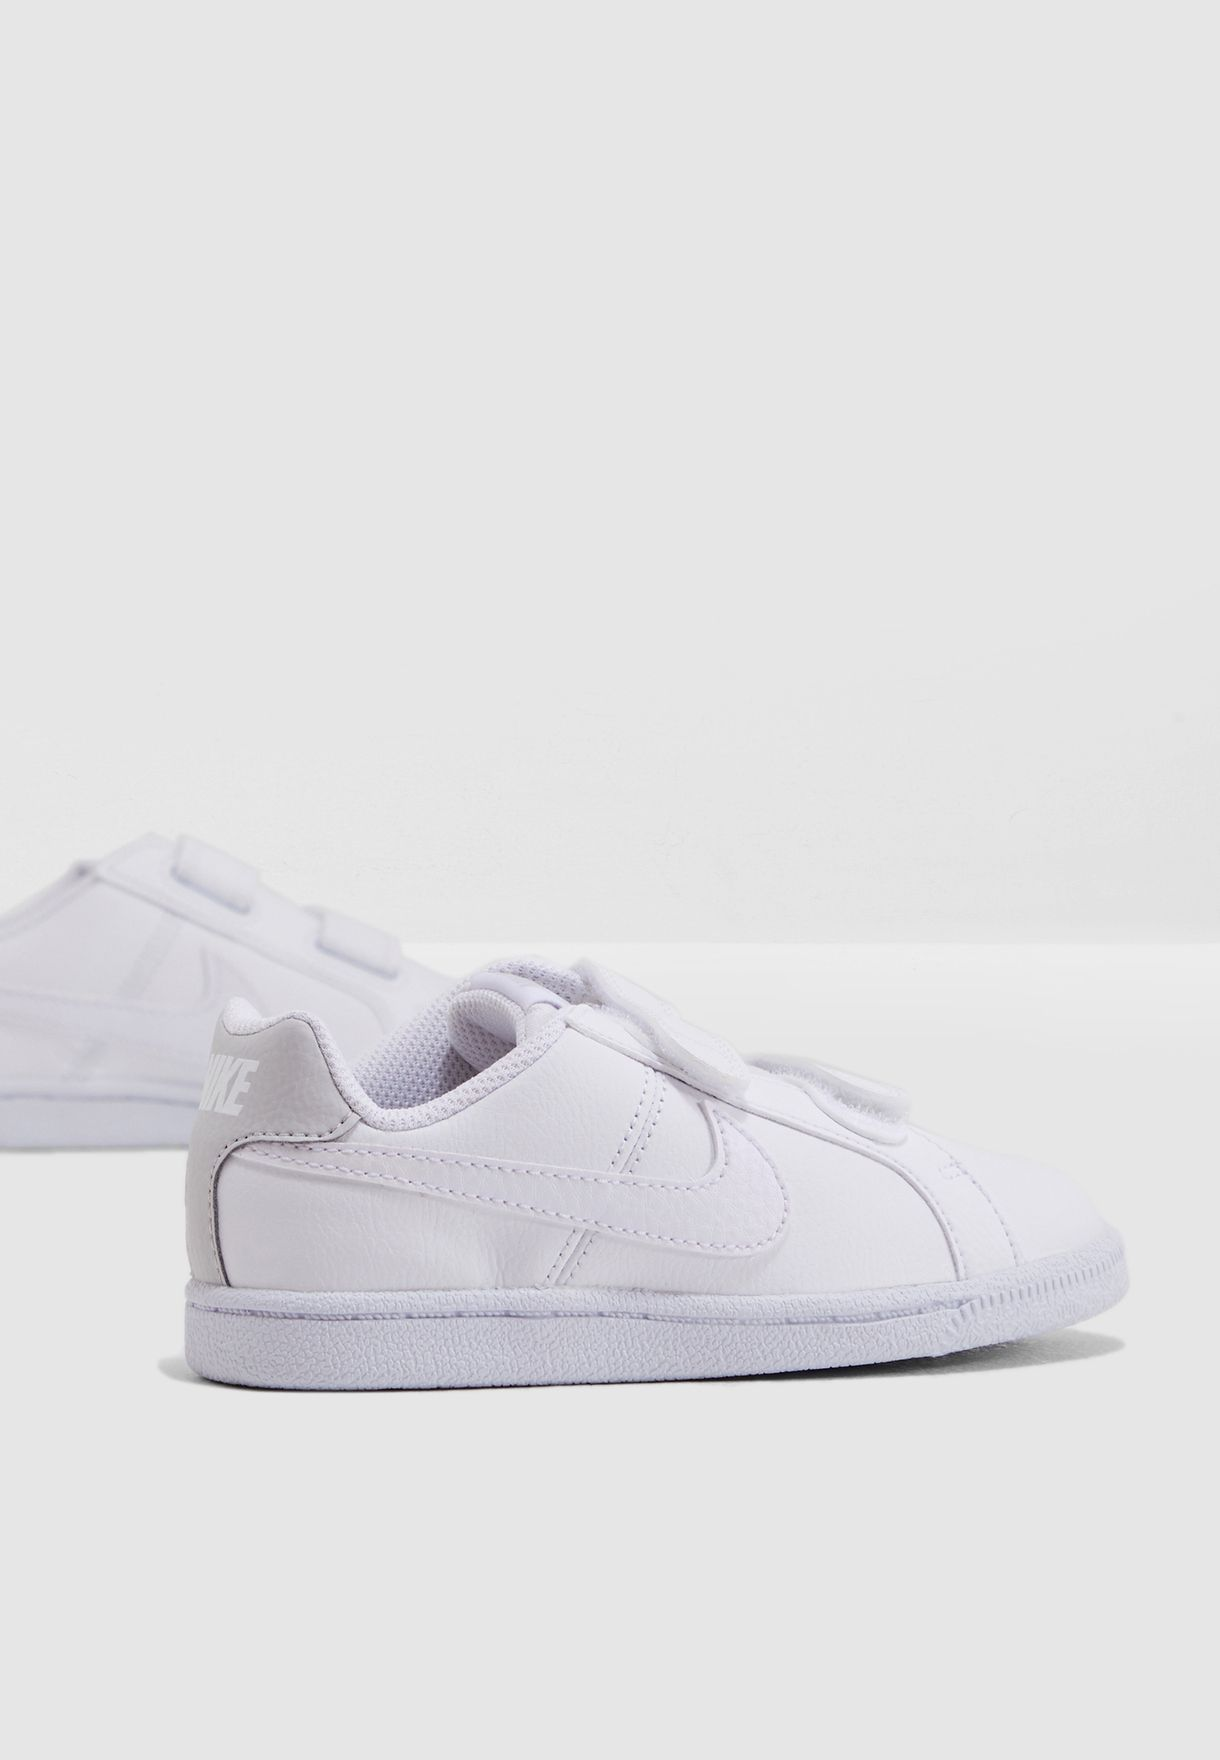 88679a18924c Shop Nike white Kids Court Royale 833655-102 for Kids in UAE - 72704SH74UWP